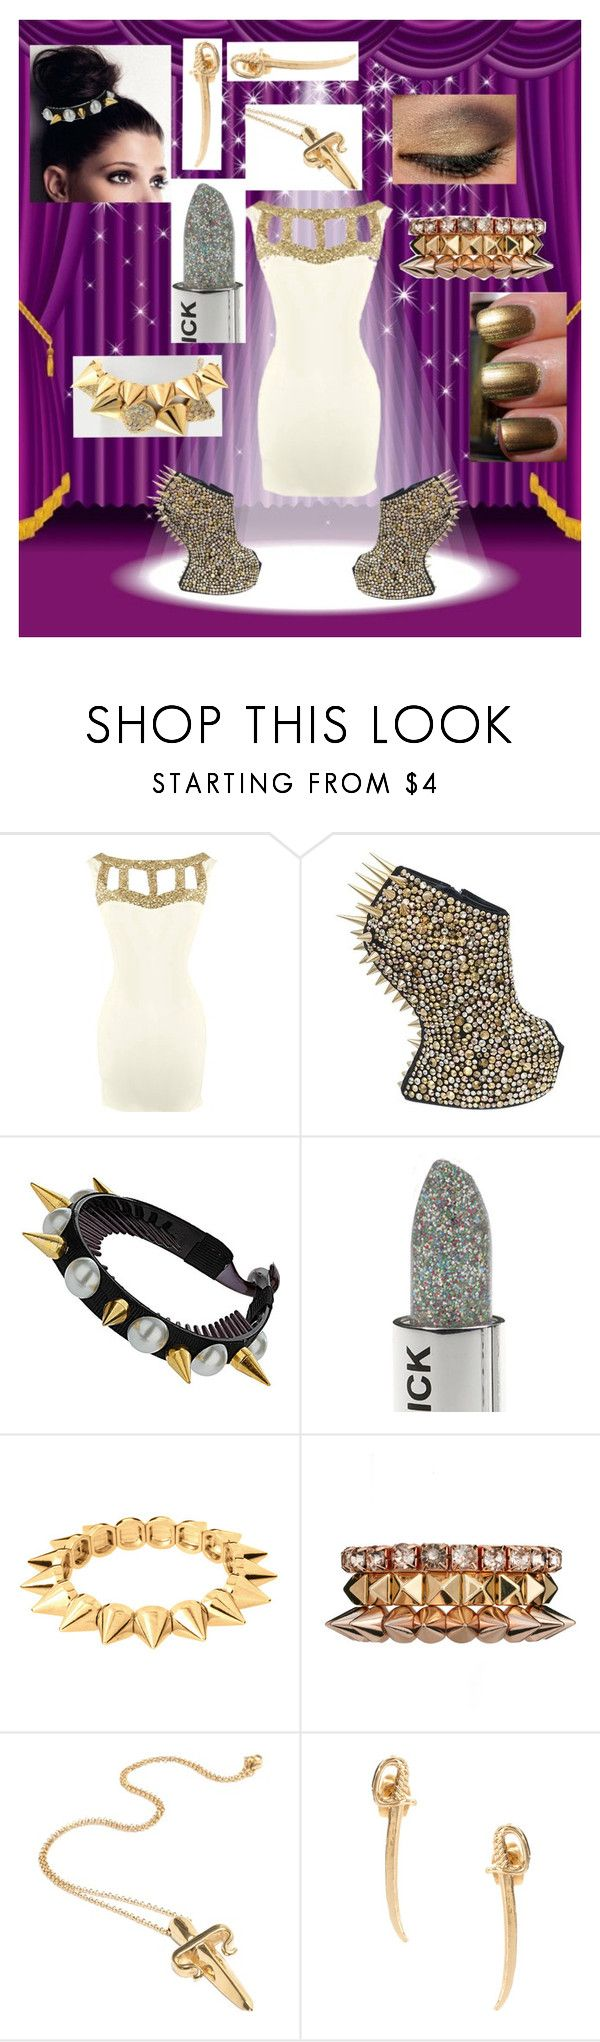 """amari interview dress"" by faleur102 ❤ liked on Polyvore featuring Giuseppe Zanotti, China Glaze, ASOS, LeiVanKash and Bing Bang"